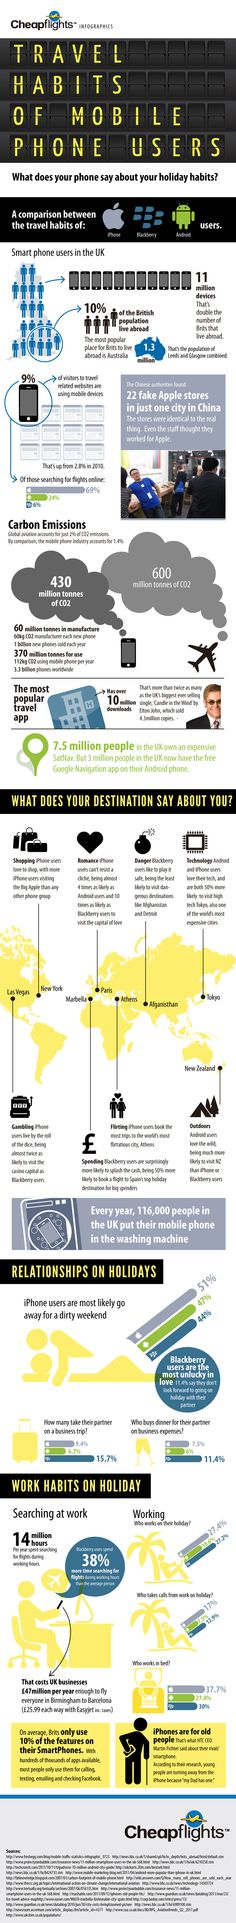 Travel Habits of Mobile users